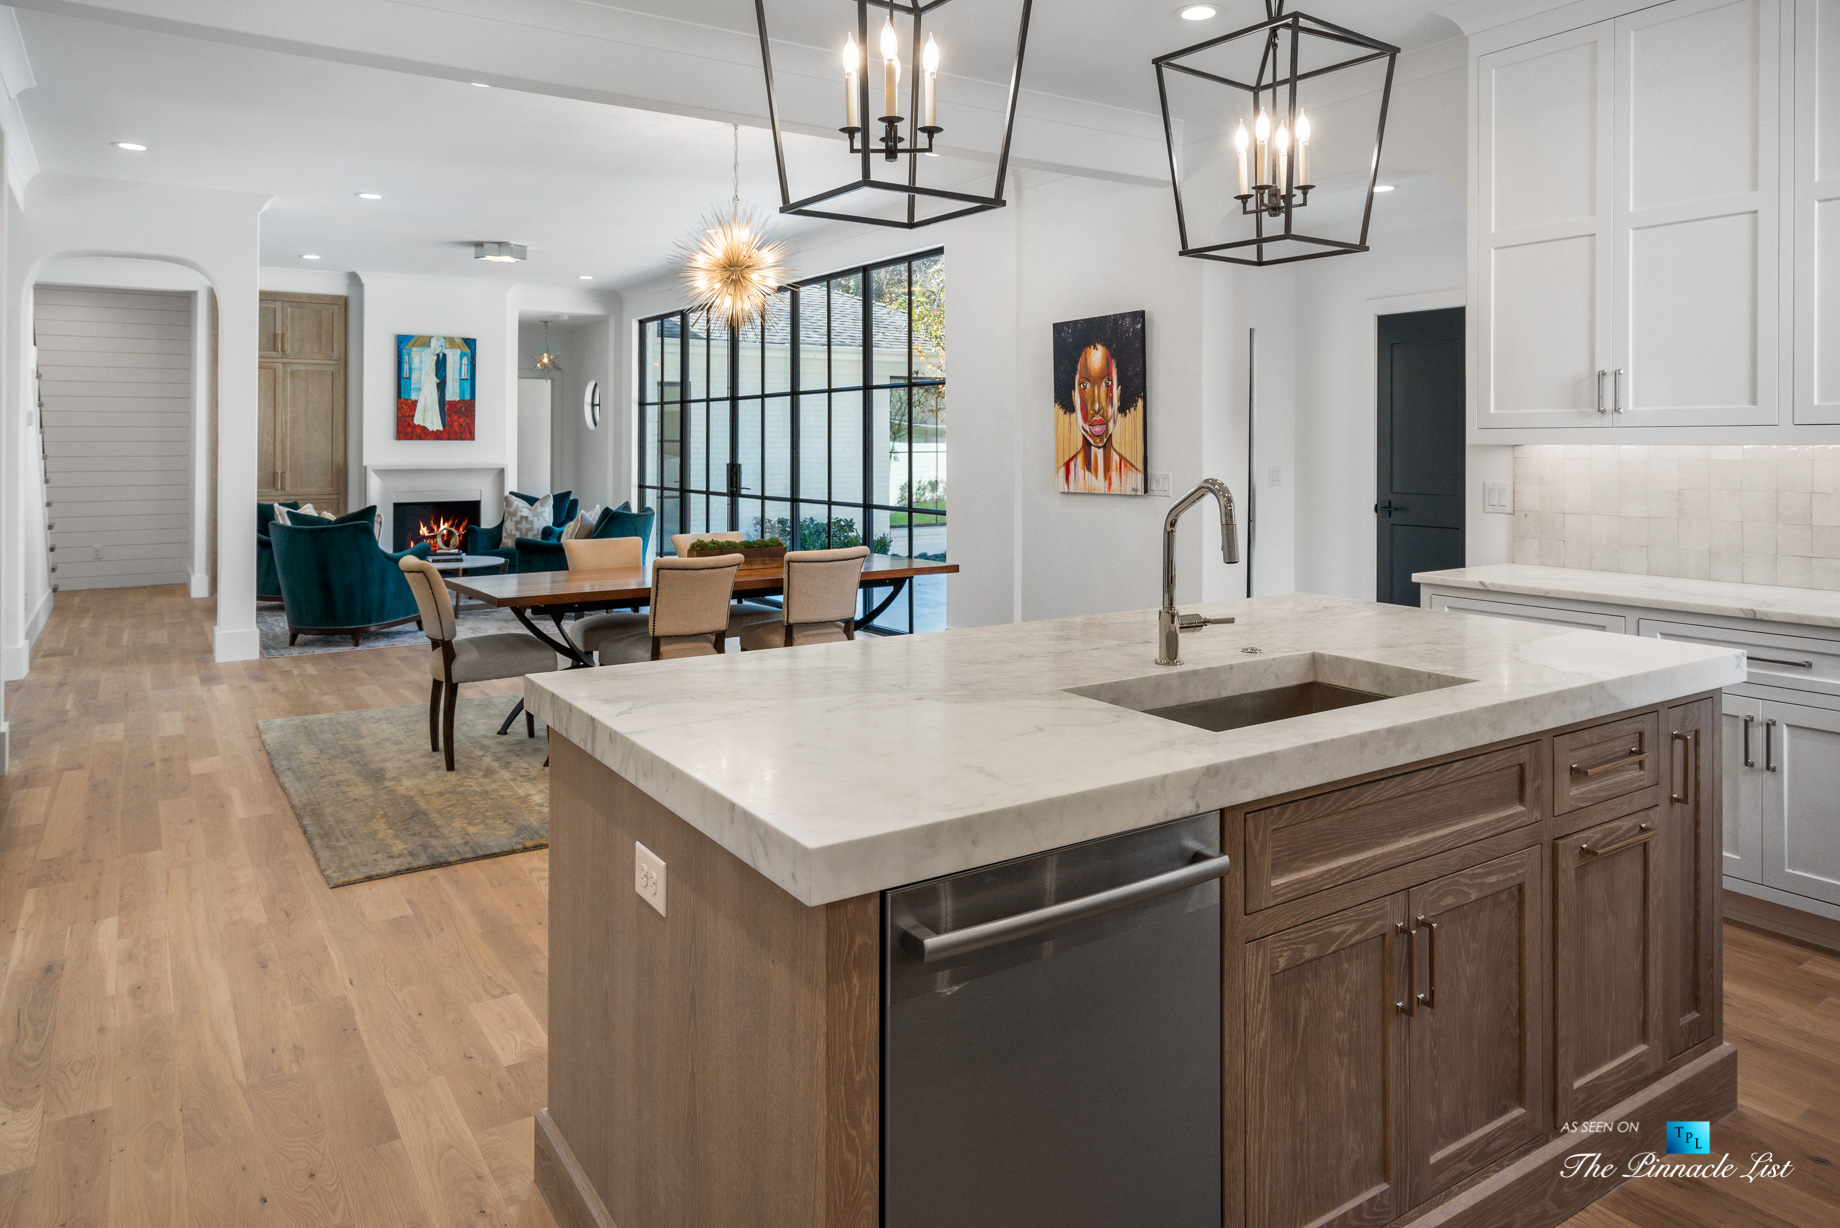 447 Valley Rd NW, Atlanta, GA, USA - Kitchen Island and Family Room - Luxury Real Estate - Tuxedo Park Home